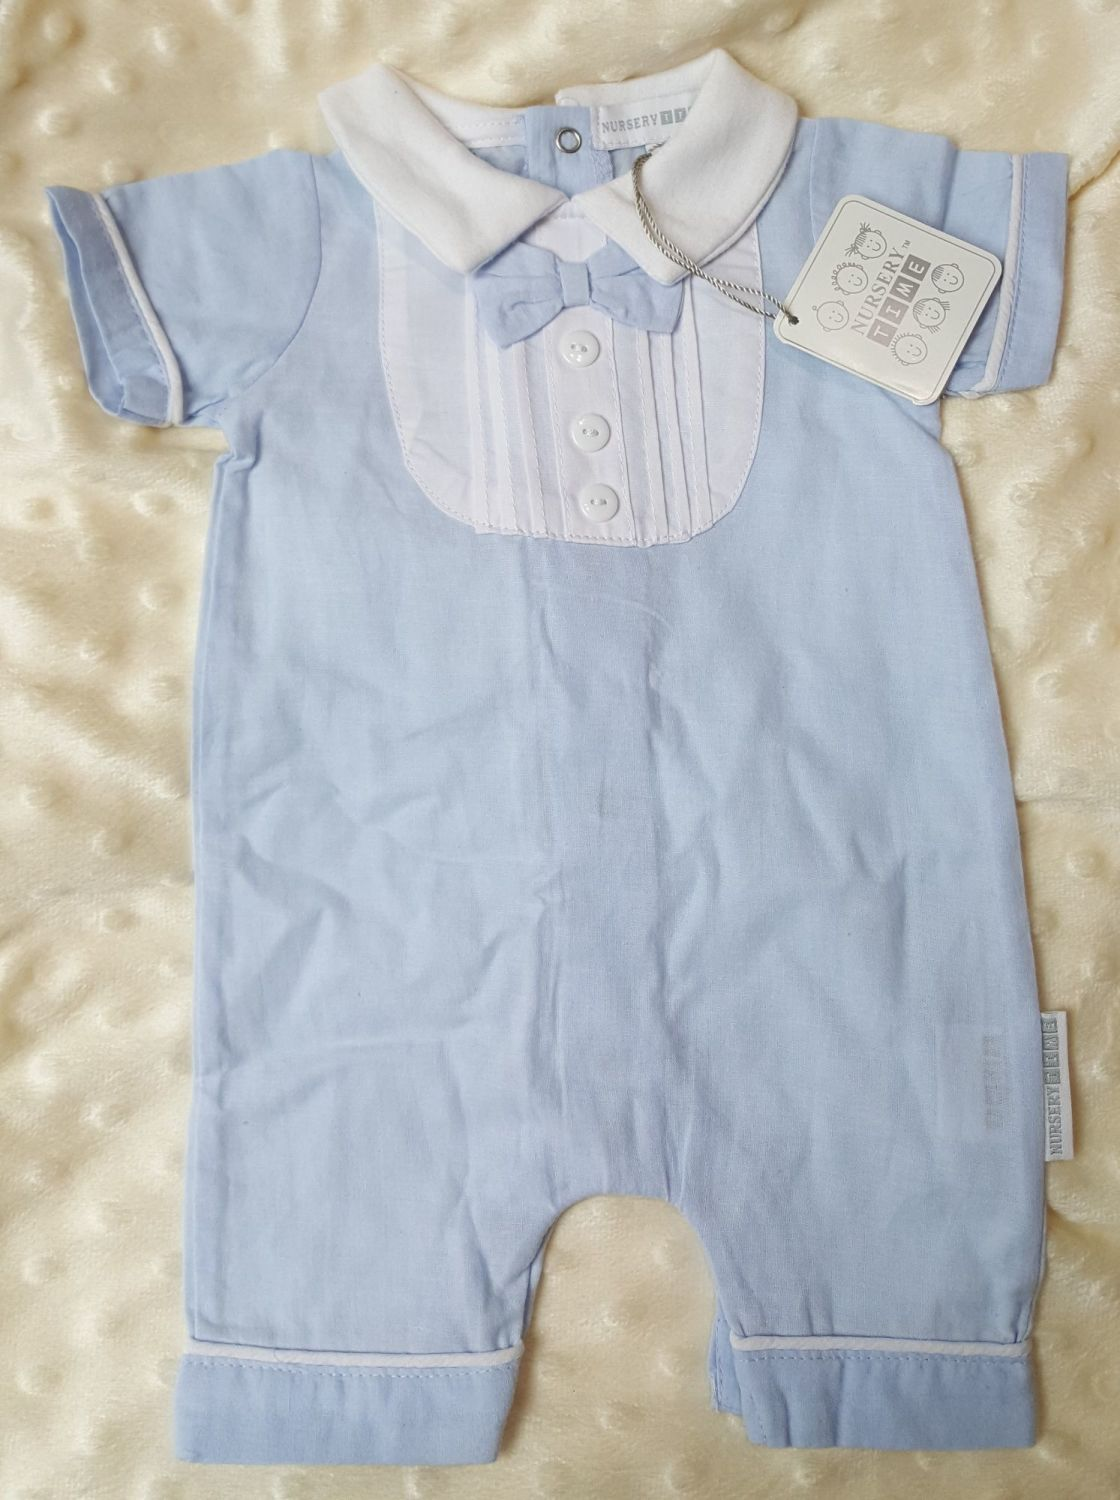 Blue romper with bow tie  NBB-NT100NT